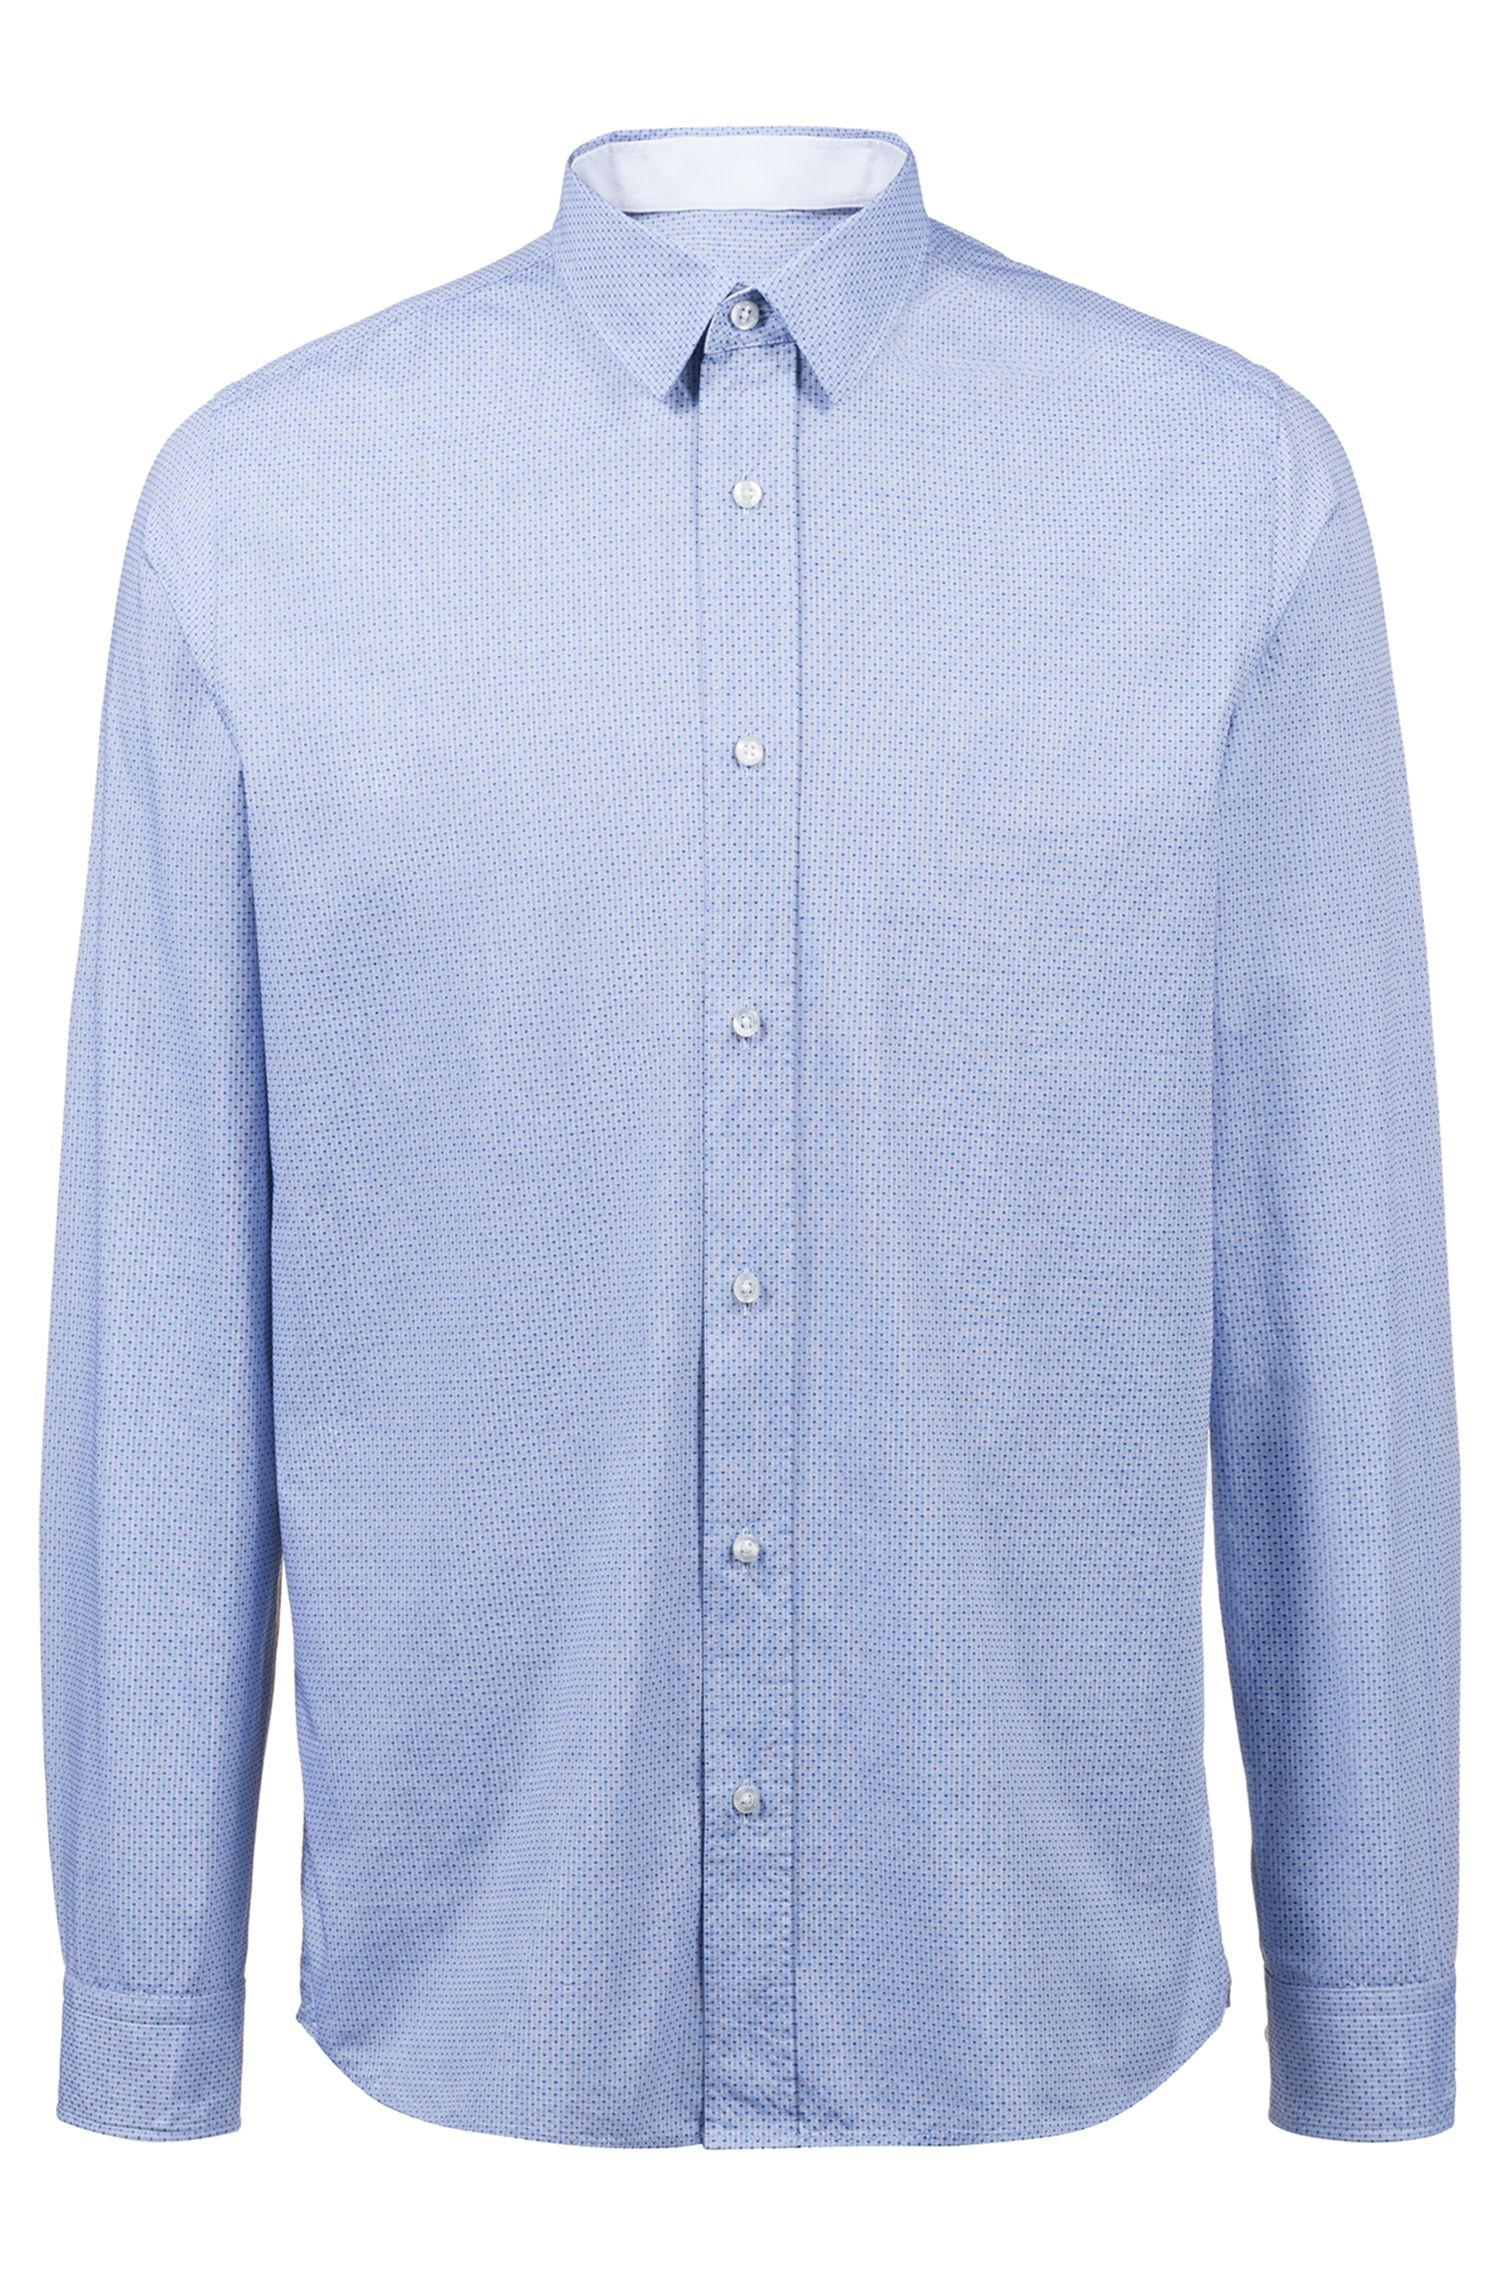 Relaxed-fit cotton shirt with a structured stripe pattern | Evory